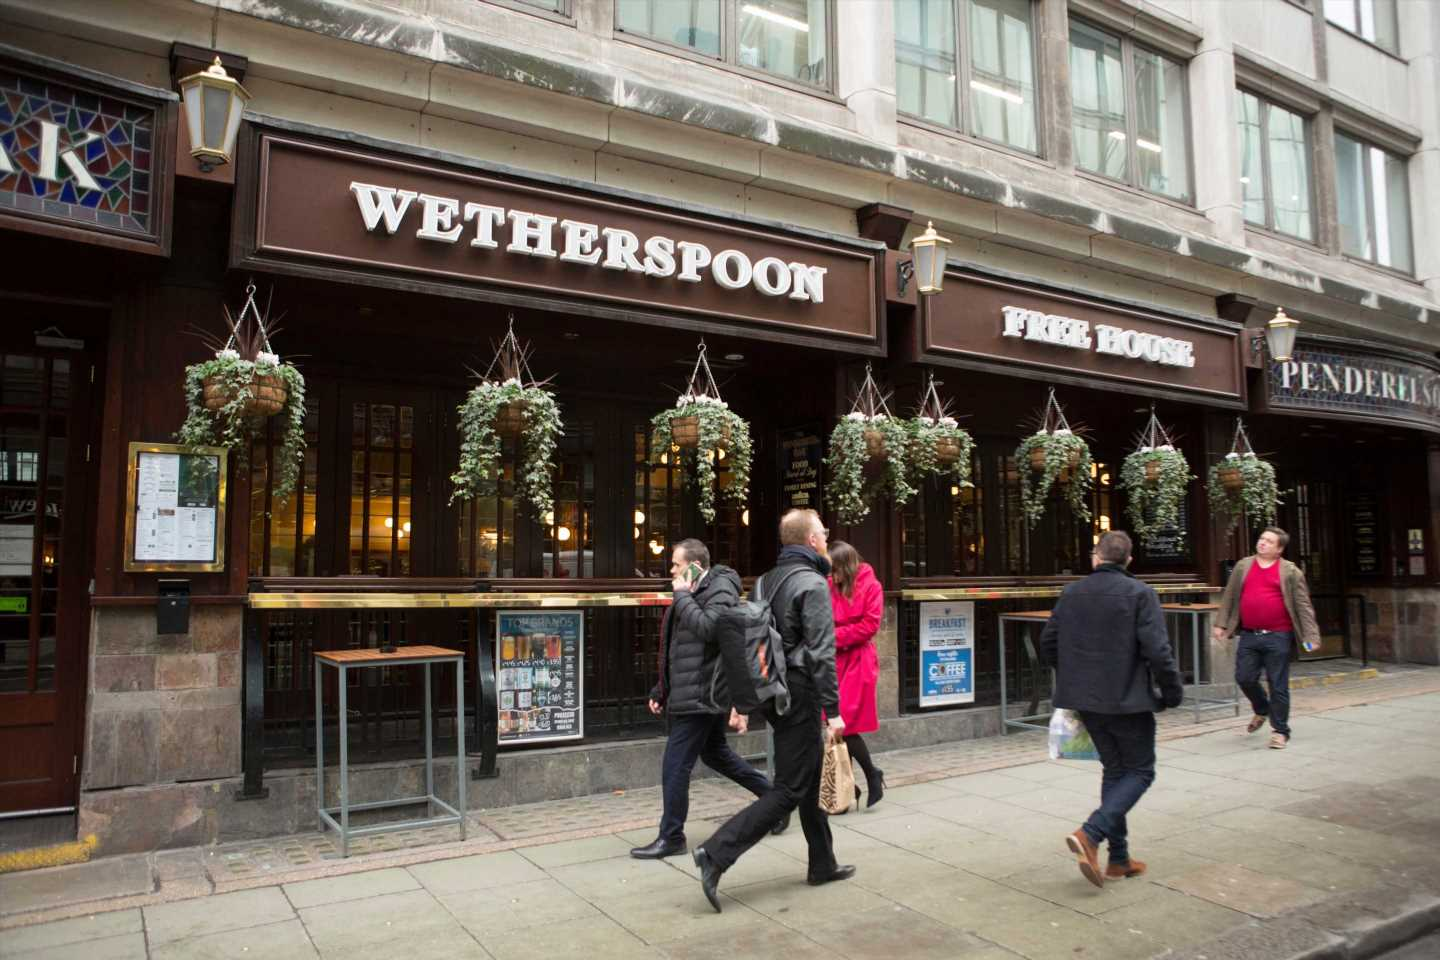 The Facebook groups where strangers send each other FREE Wetherspoons drinks and food